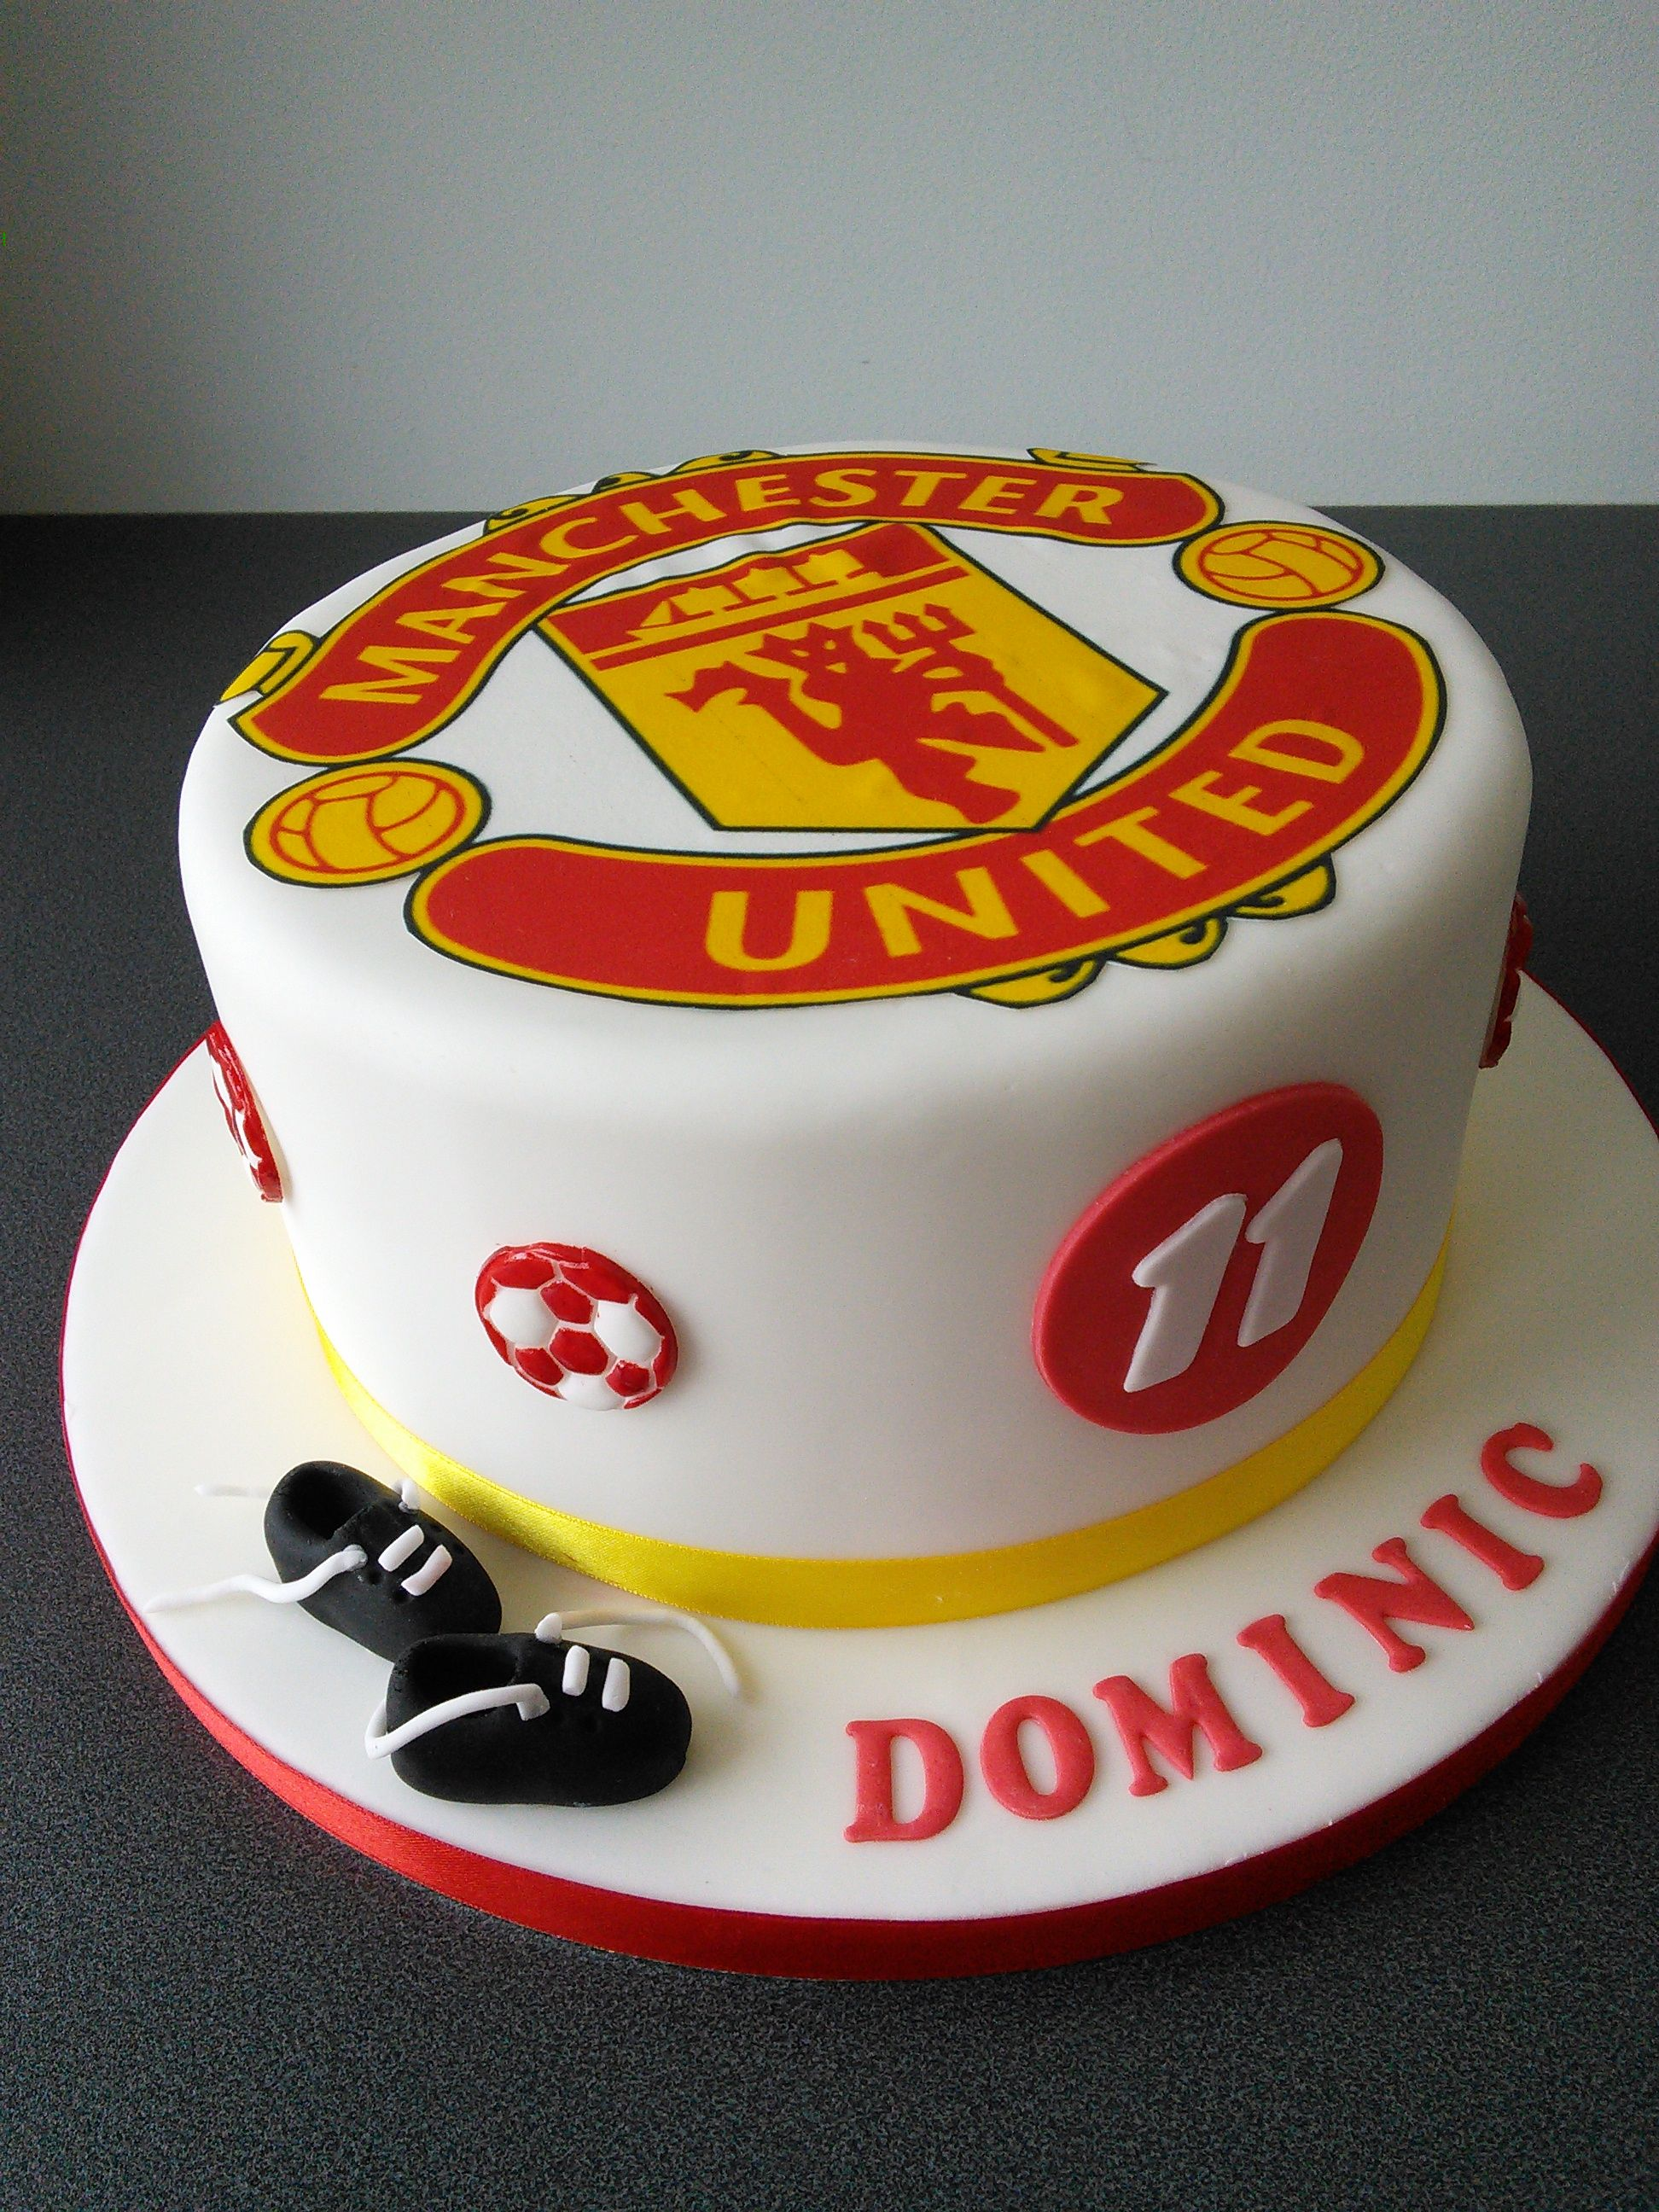 Manchester United Football Club And Football Boots Birthday Cake 30th Birthday Cakes For Men Soccer Birthday Cakes Birthday Cakes For Men